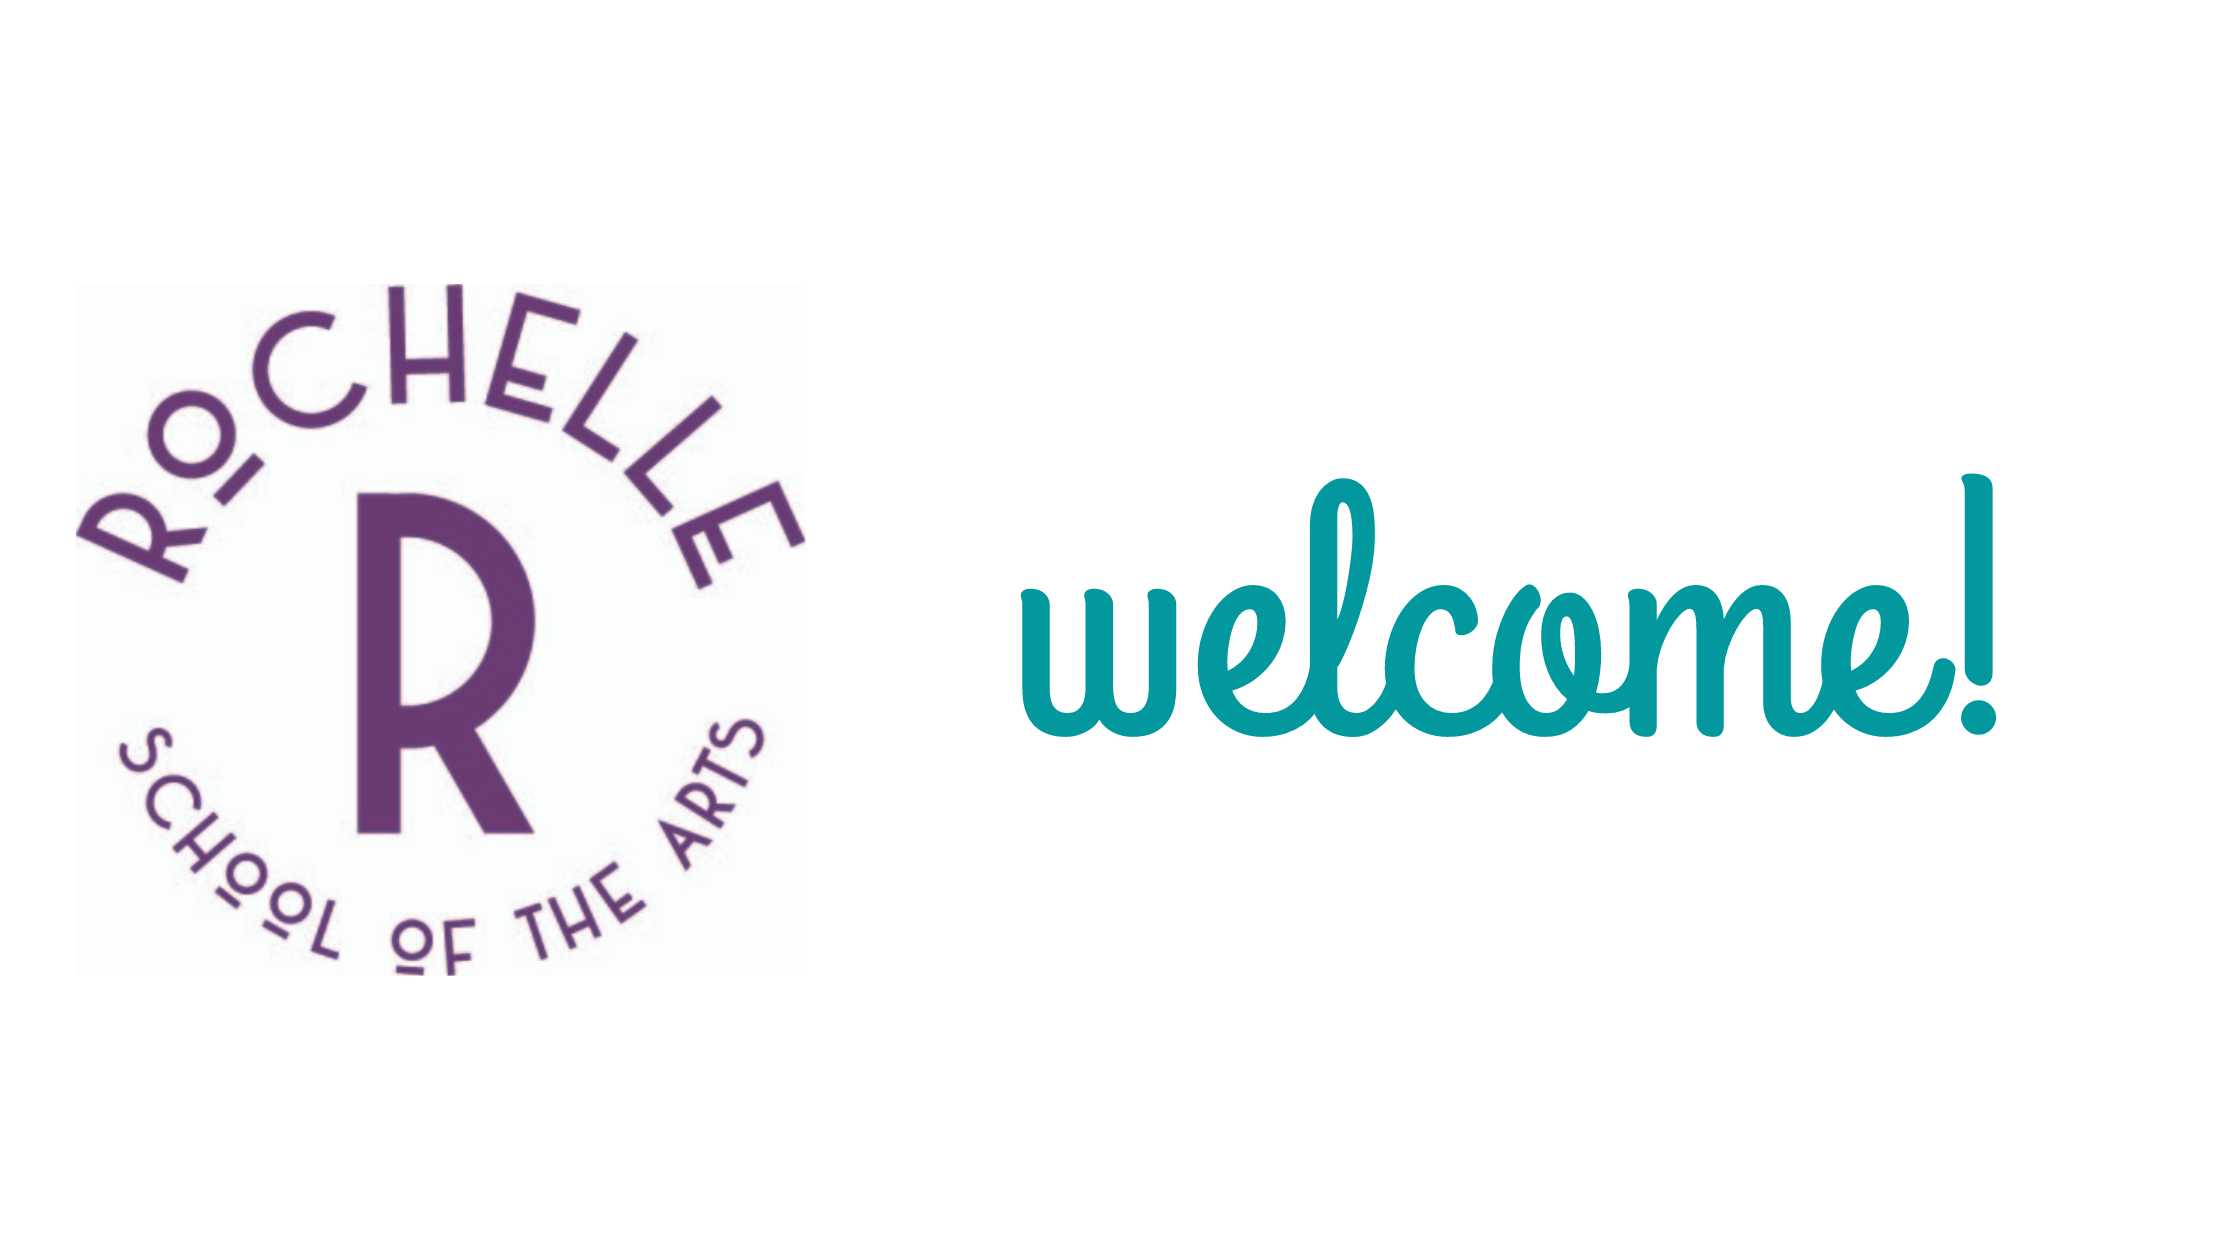 Rochelle logo, text: welcome